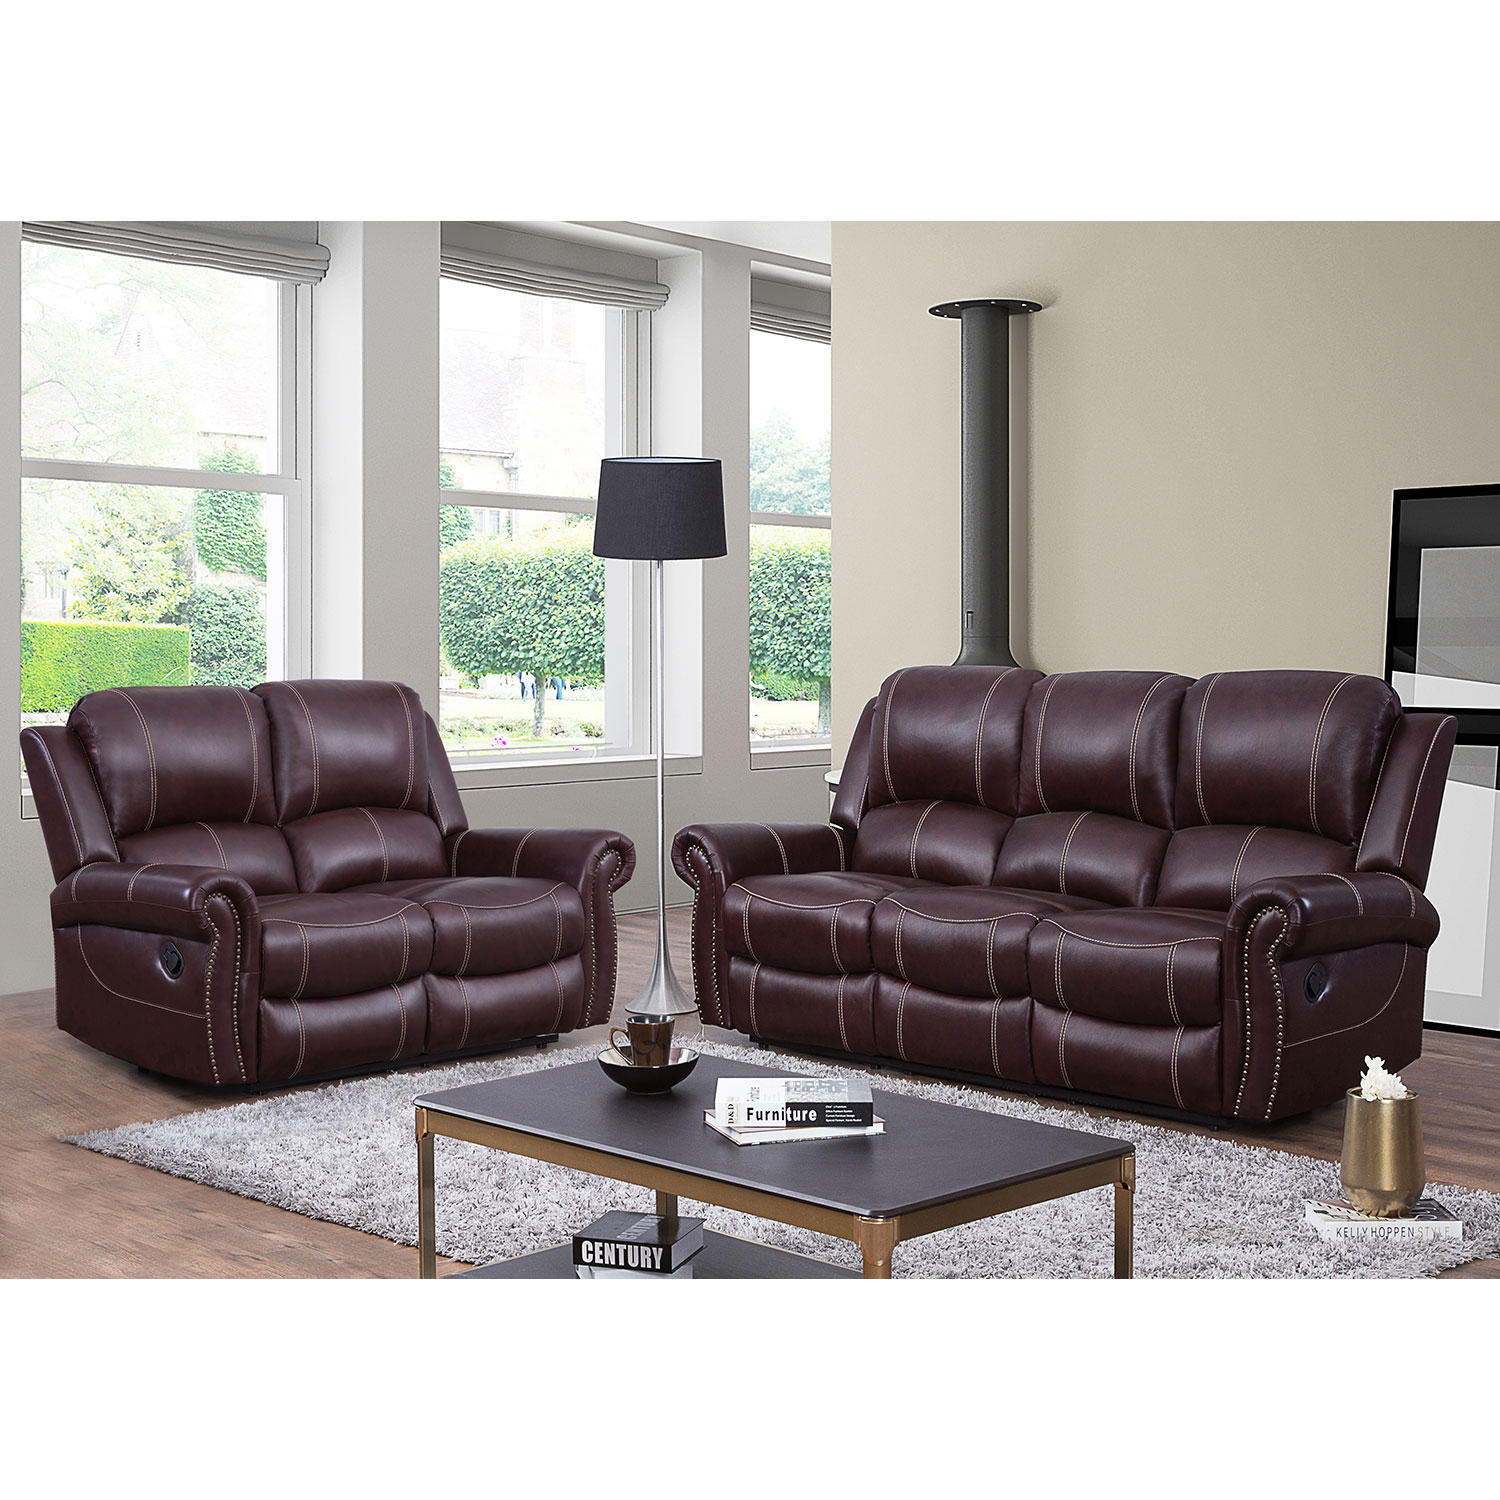 Abbyson Living Vincent Top-Grain Leather Reclining Loveseat and Sofa